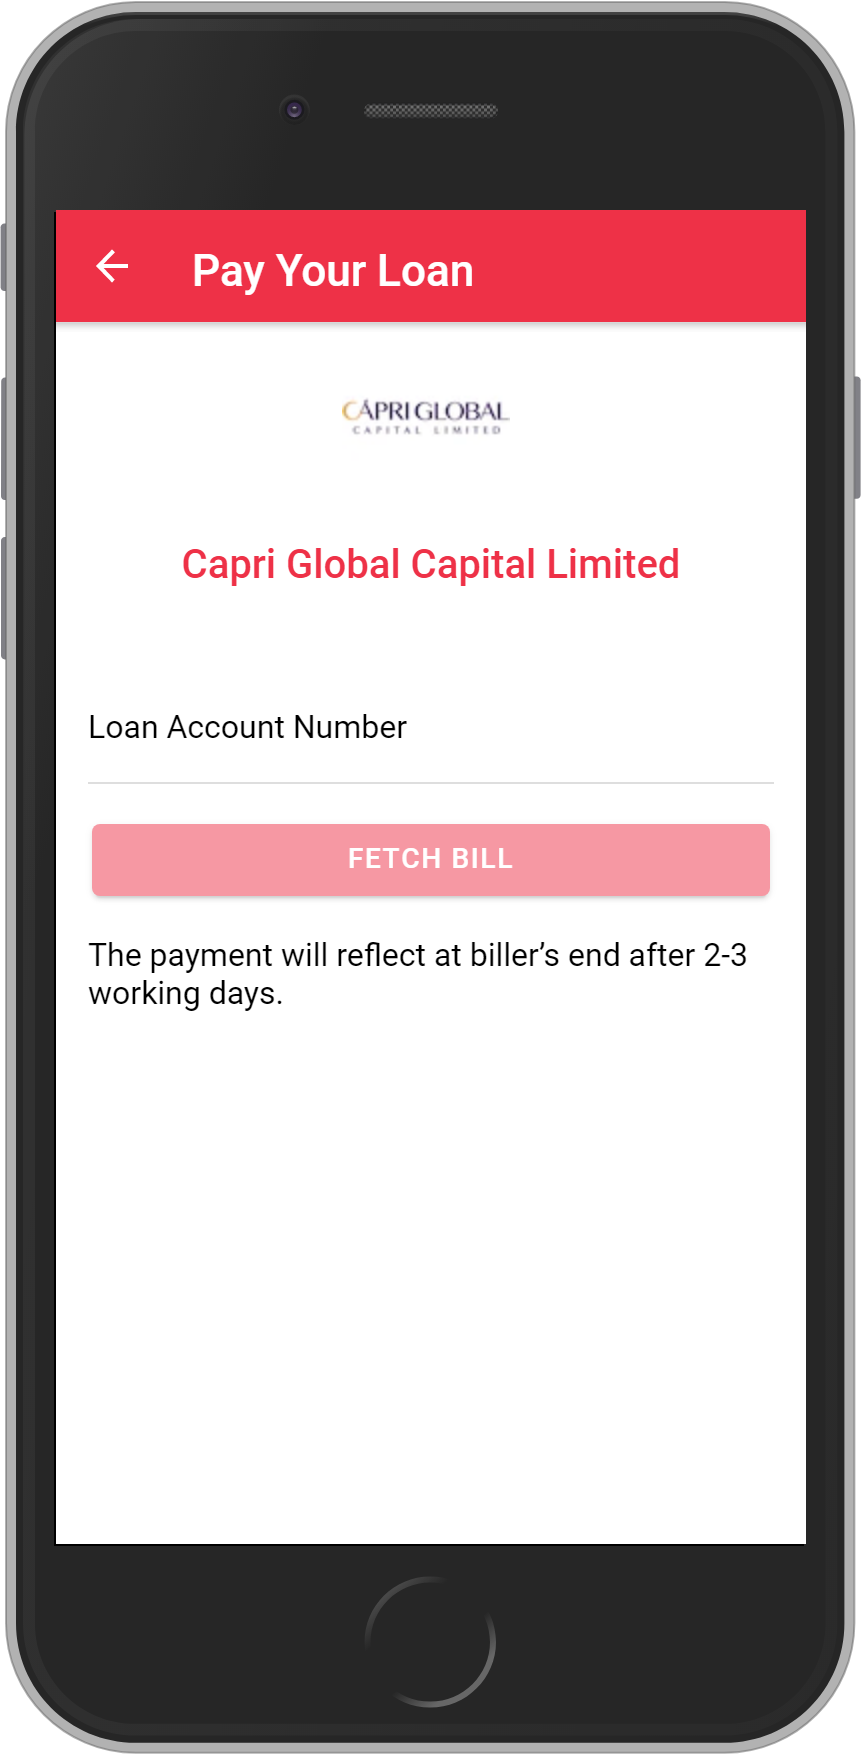 Get UNLIMITED <b>0.1%</b> CASHBACK on Capri Global Capital Limited Loan Payment.